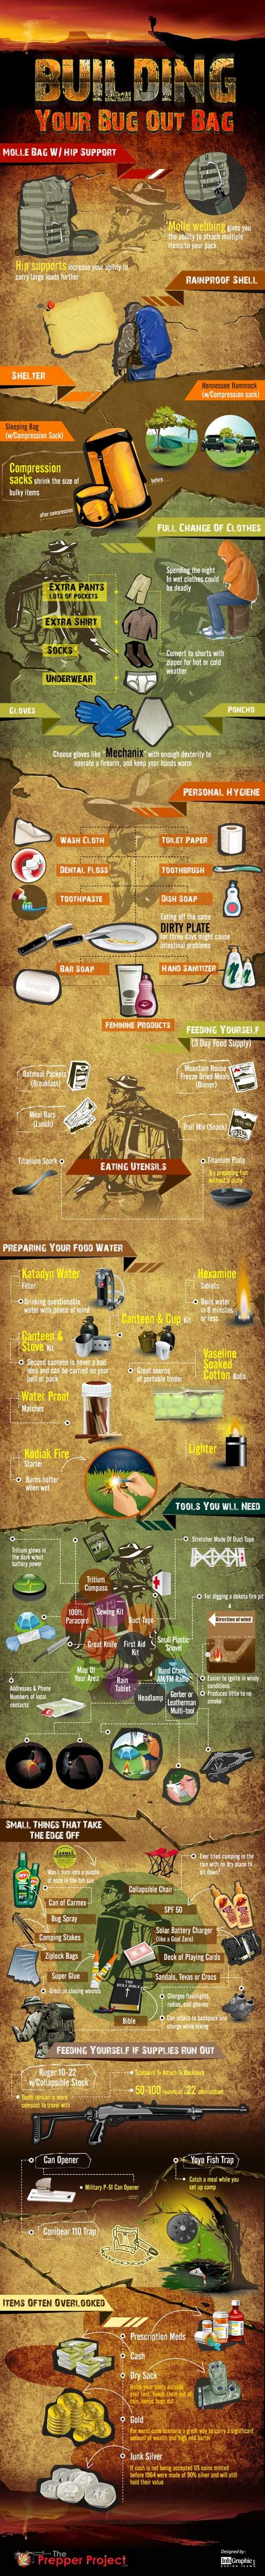 Building Your Bugout Bag: The Complete Infographic Checklist The Prepper Project April 30th, 2013